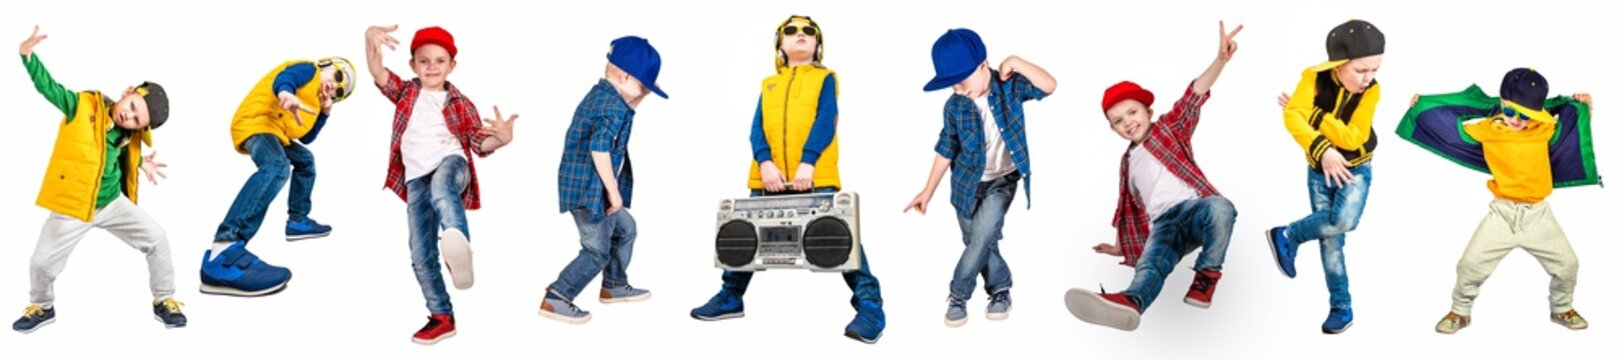 The boys in the style of Hip-Hop . Children's fashion.